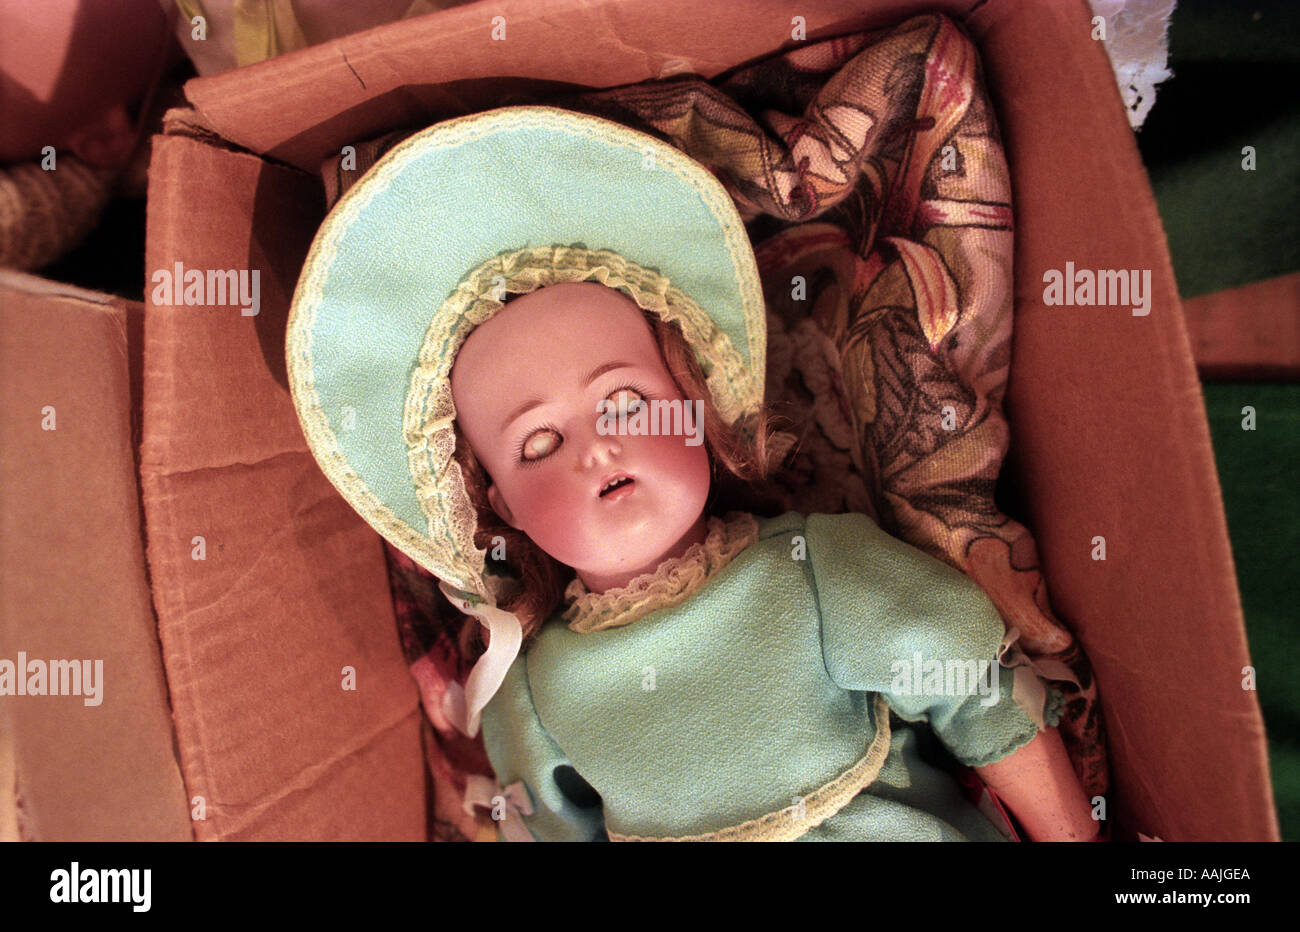 Antique Doll fino all'asta da Sotheby s in West Sussex foto da Andrew Hasson 19 Giugno 1996 Immagini Stock